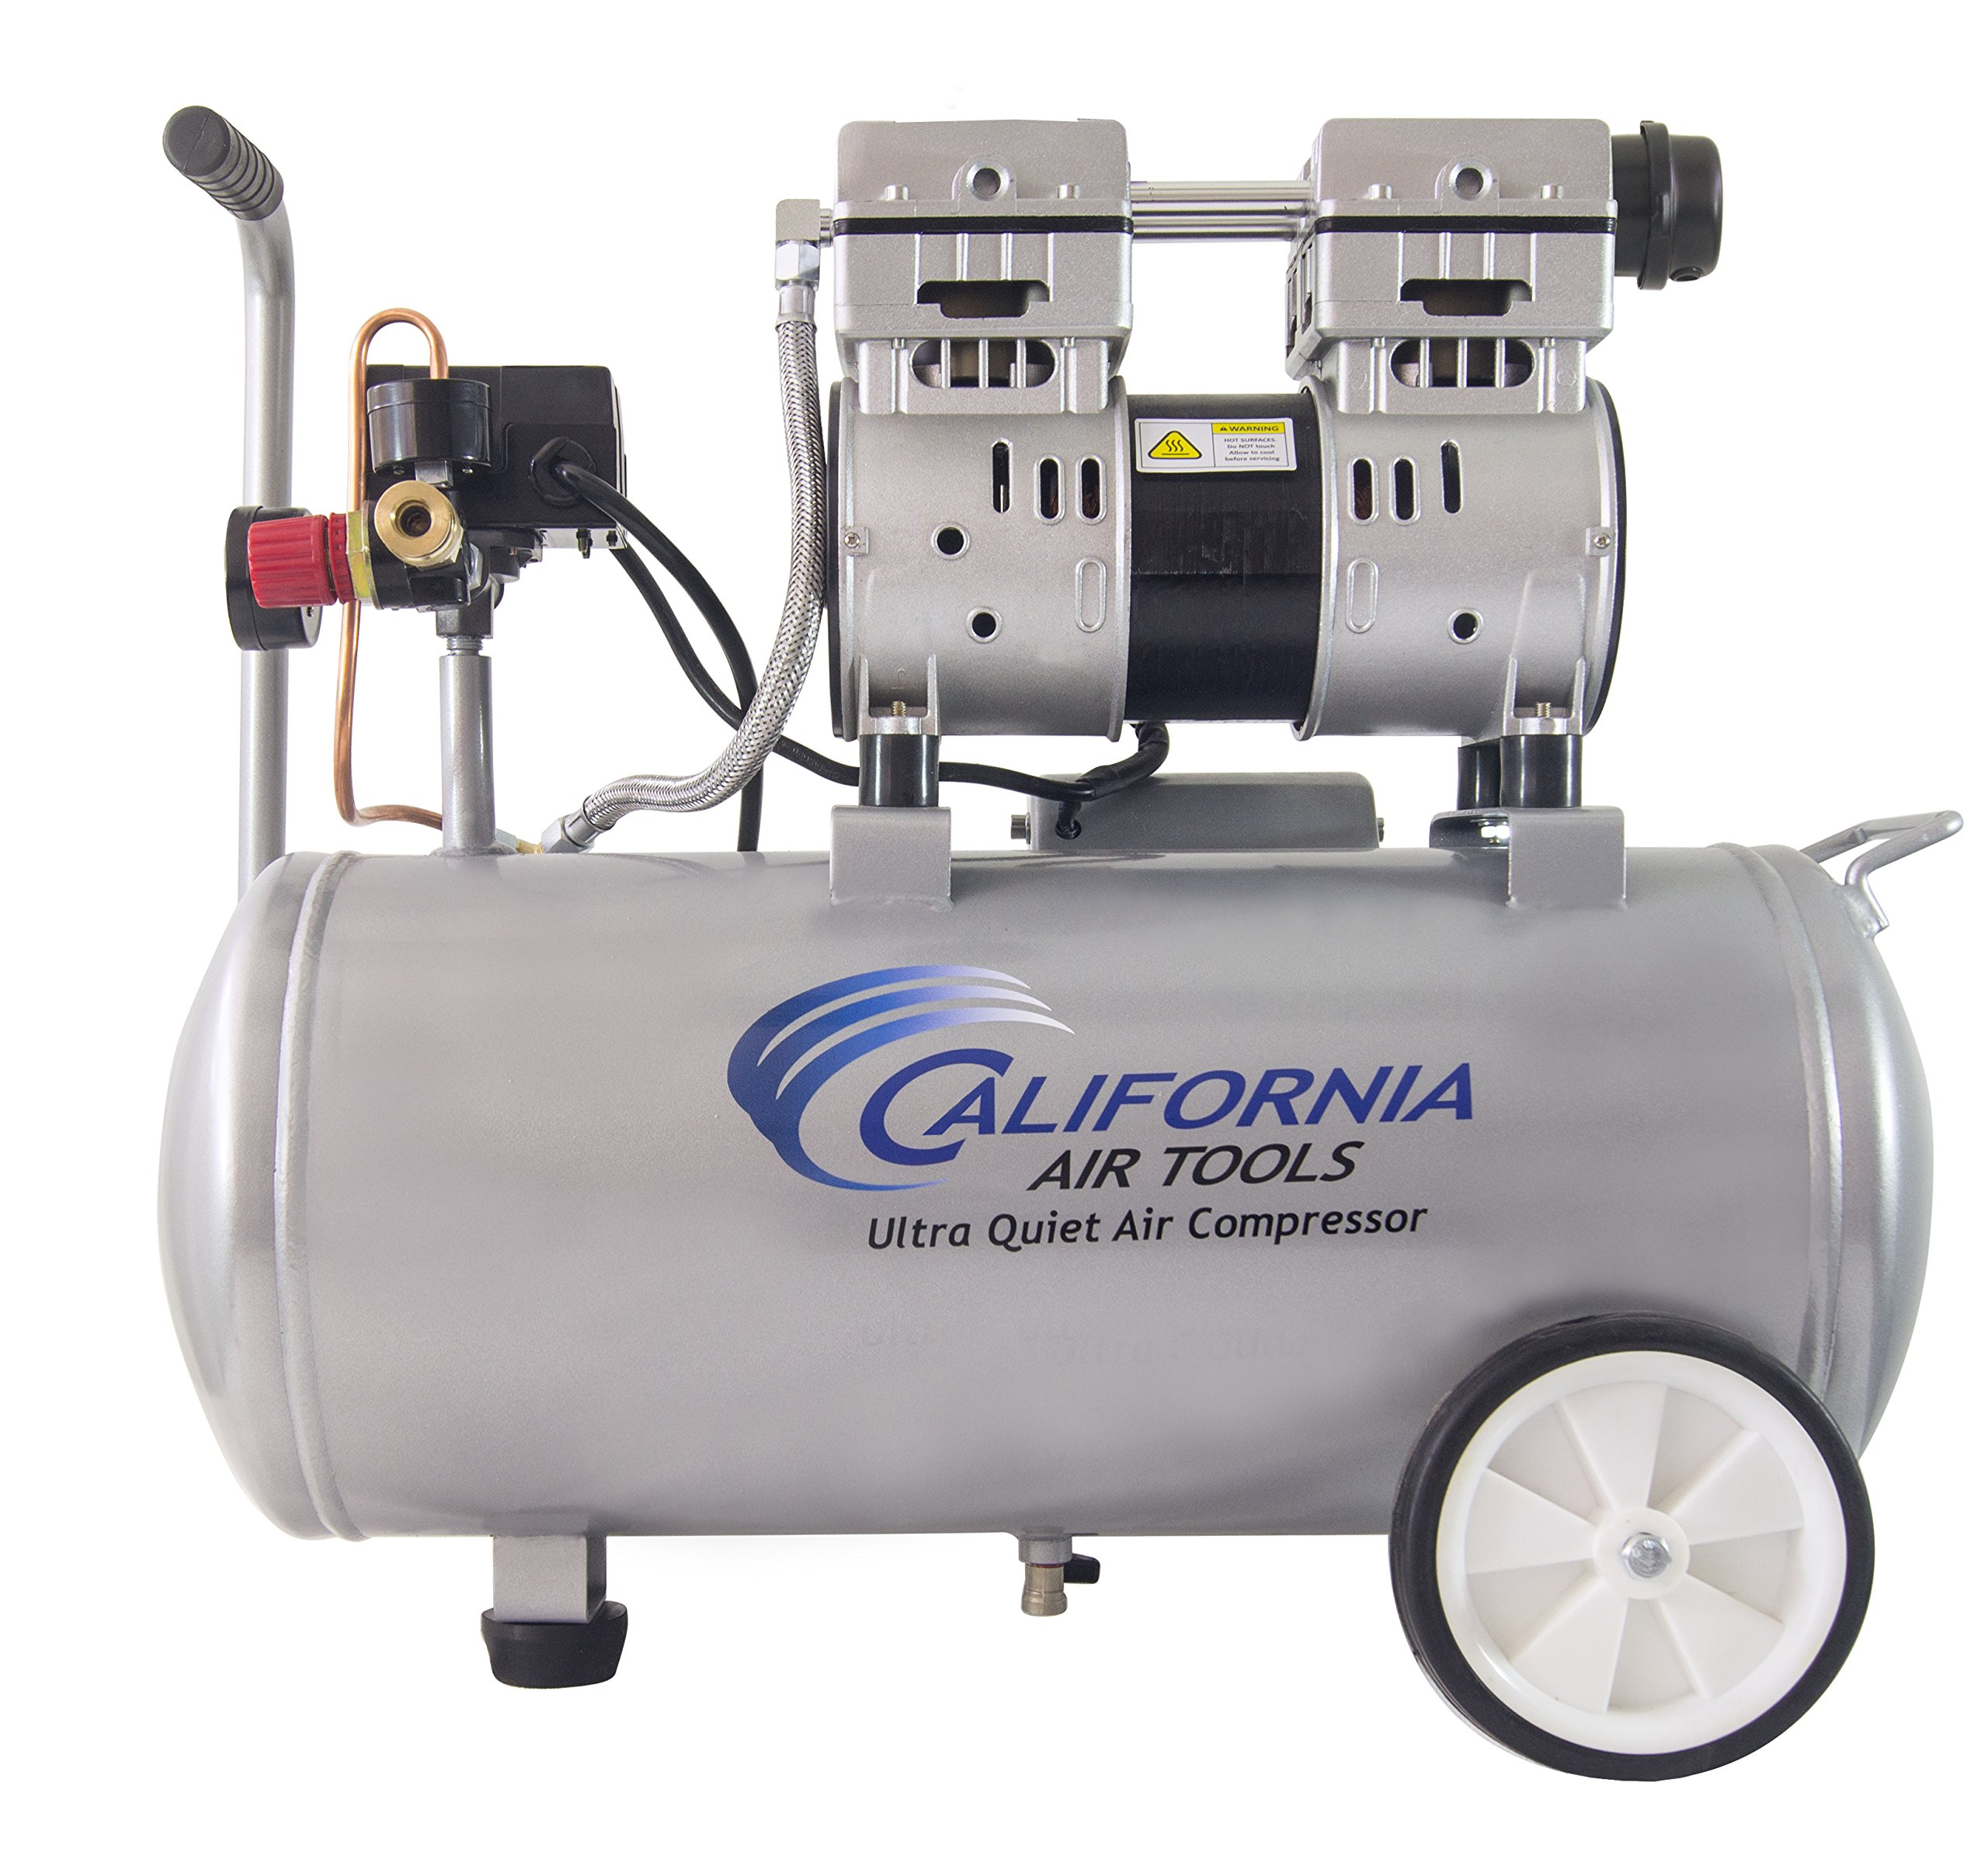 California Air Tools 8010 Ultra Quiet & Oil-Free 1.0 hp Steel Tank Air Compressor, 8 gal, Silver by California Air Tools